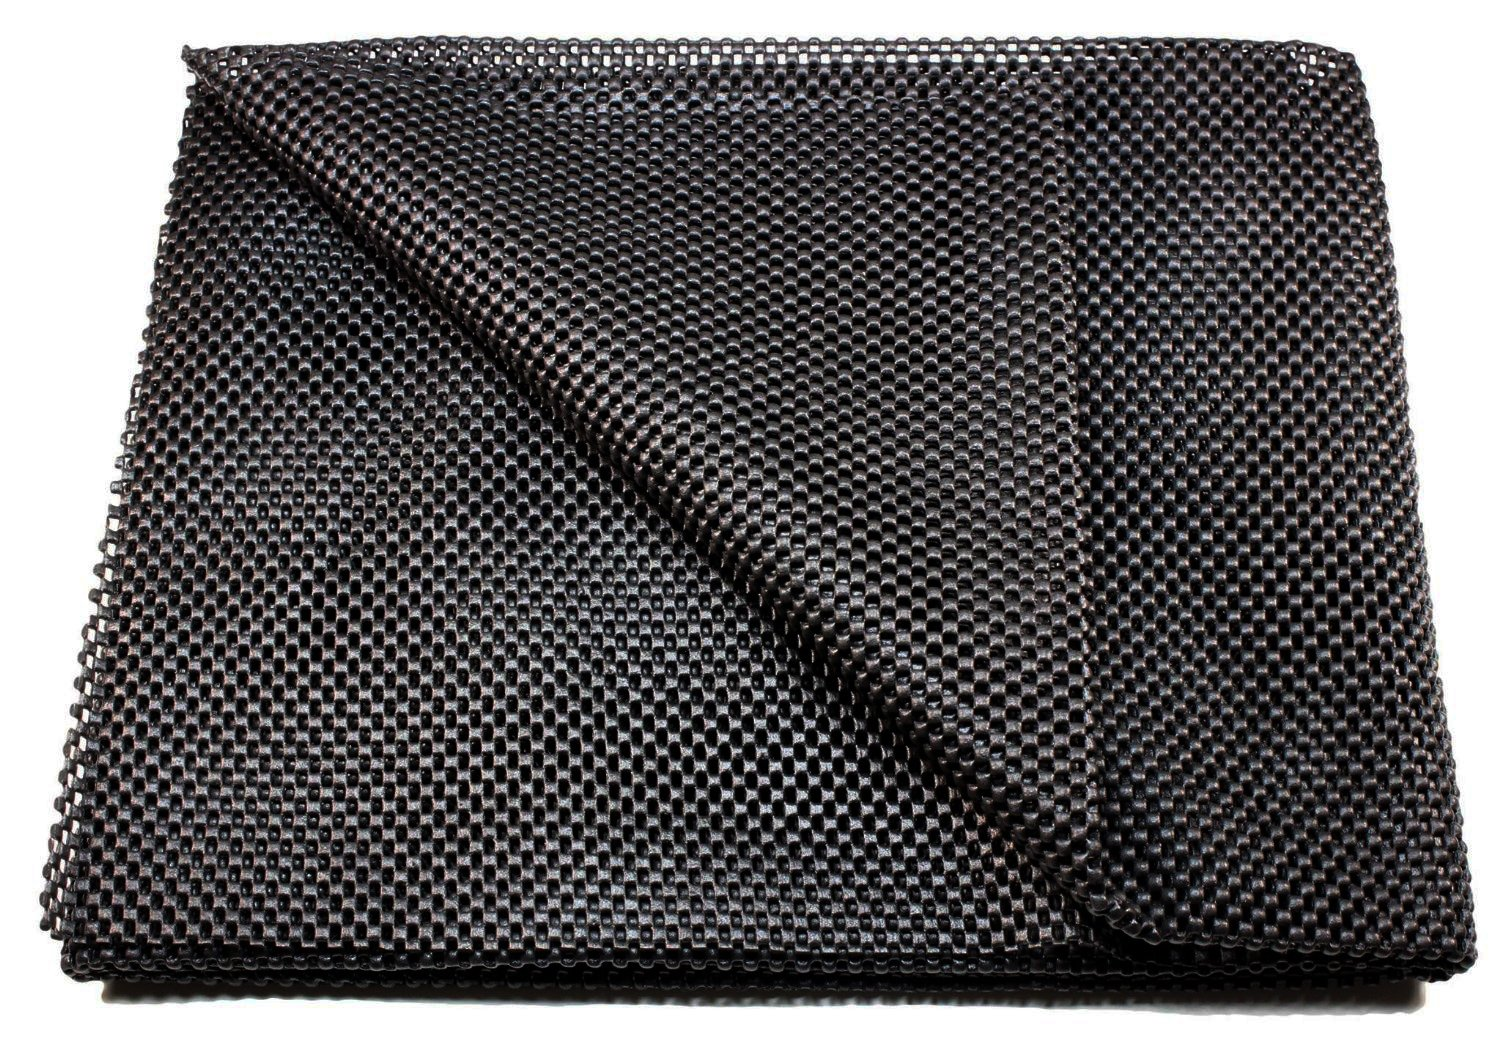 Cargo Liner 47 X 36 Inches for Trunk Non Skid Slip Trimmable All Weather Season Black Durable Protection Custom Fit By Makexpress mk